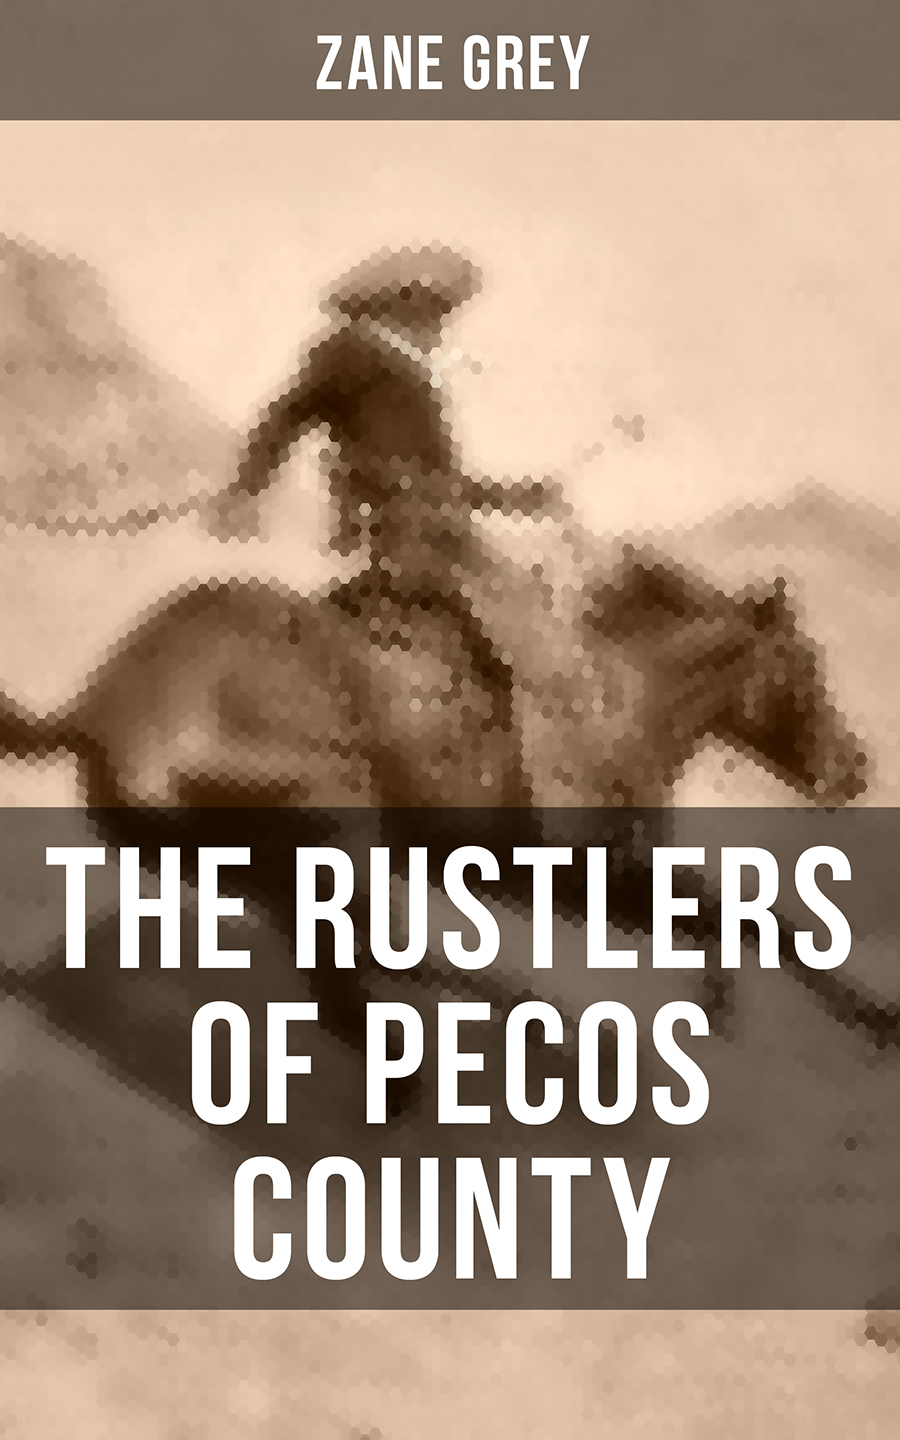 Zane Grey THE RUSTLERS OF PECOS COUNTY muscatine muscatine conchological club the mollusca of muscatine county and vicinity